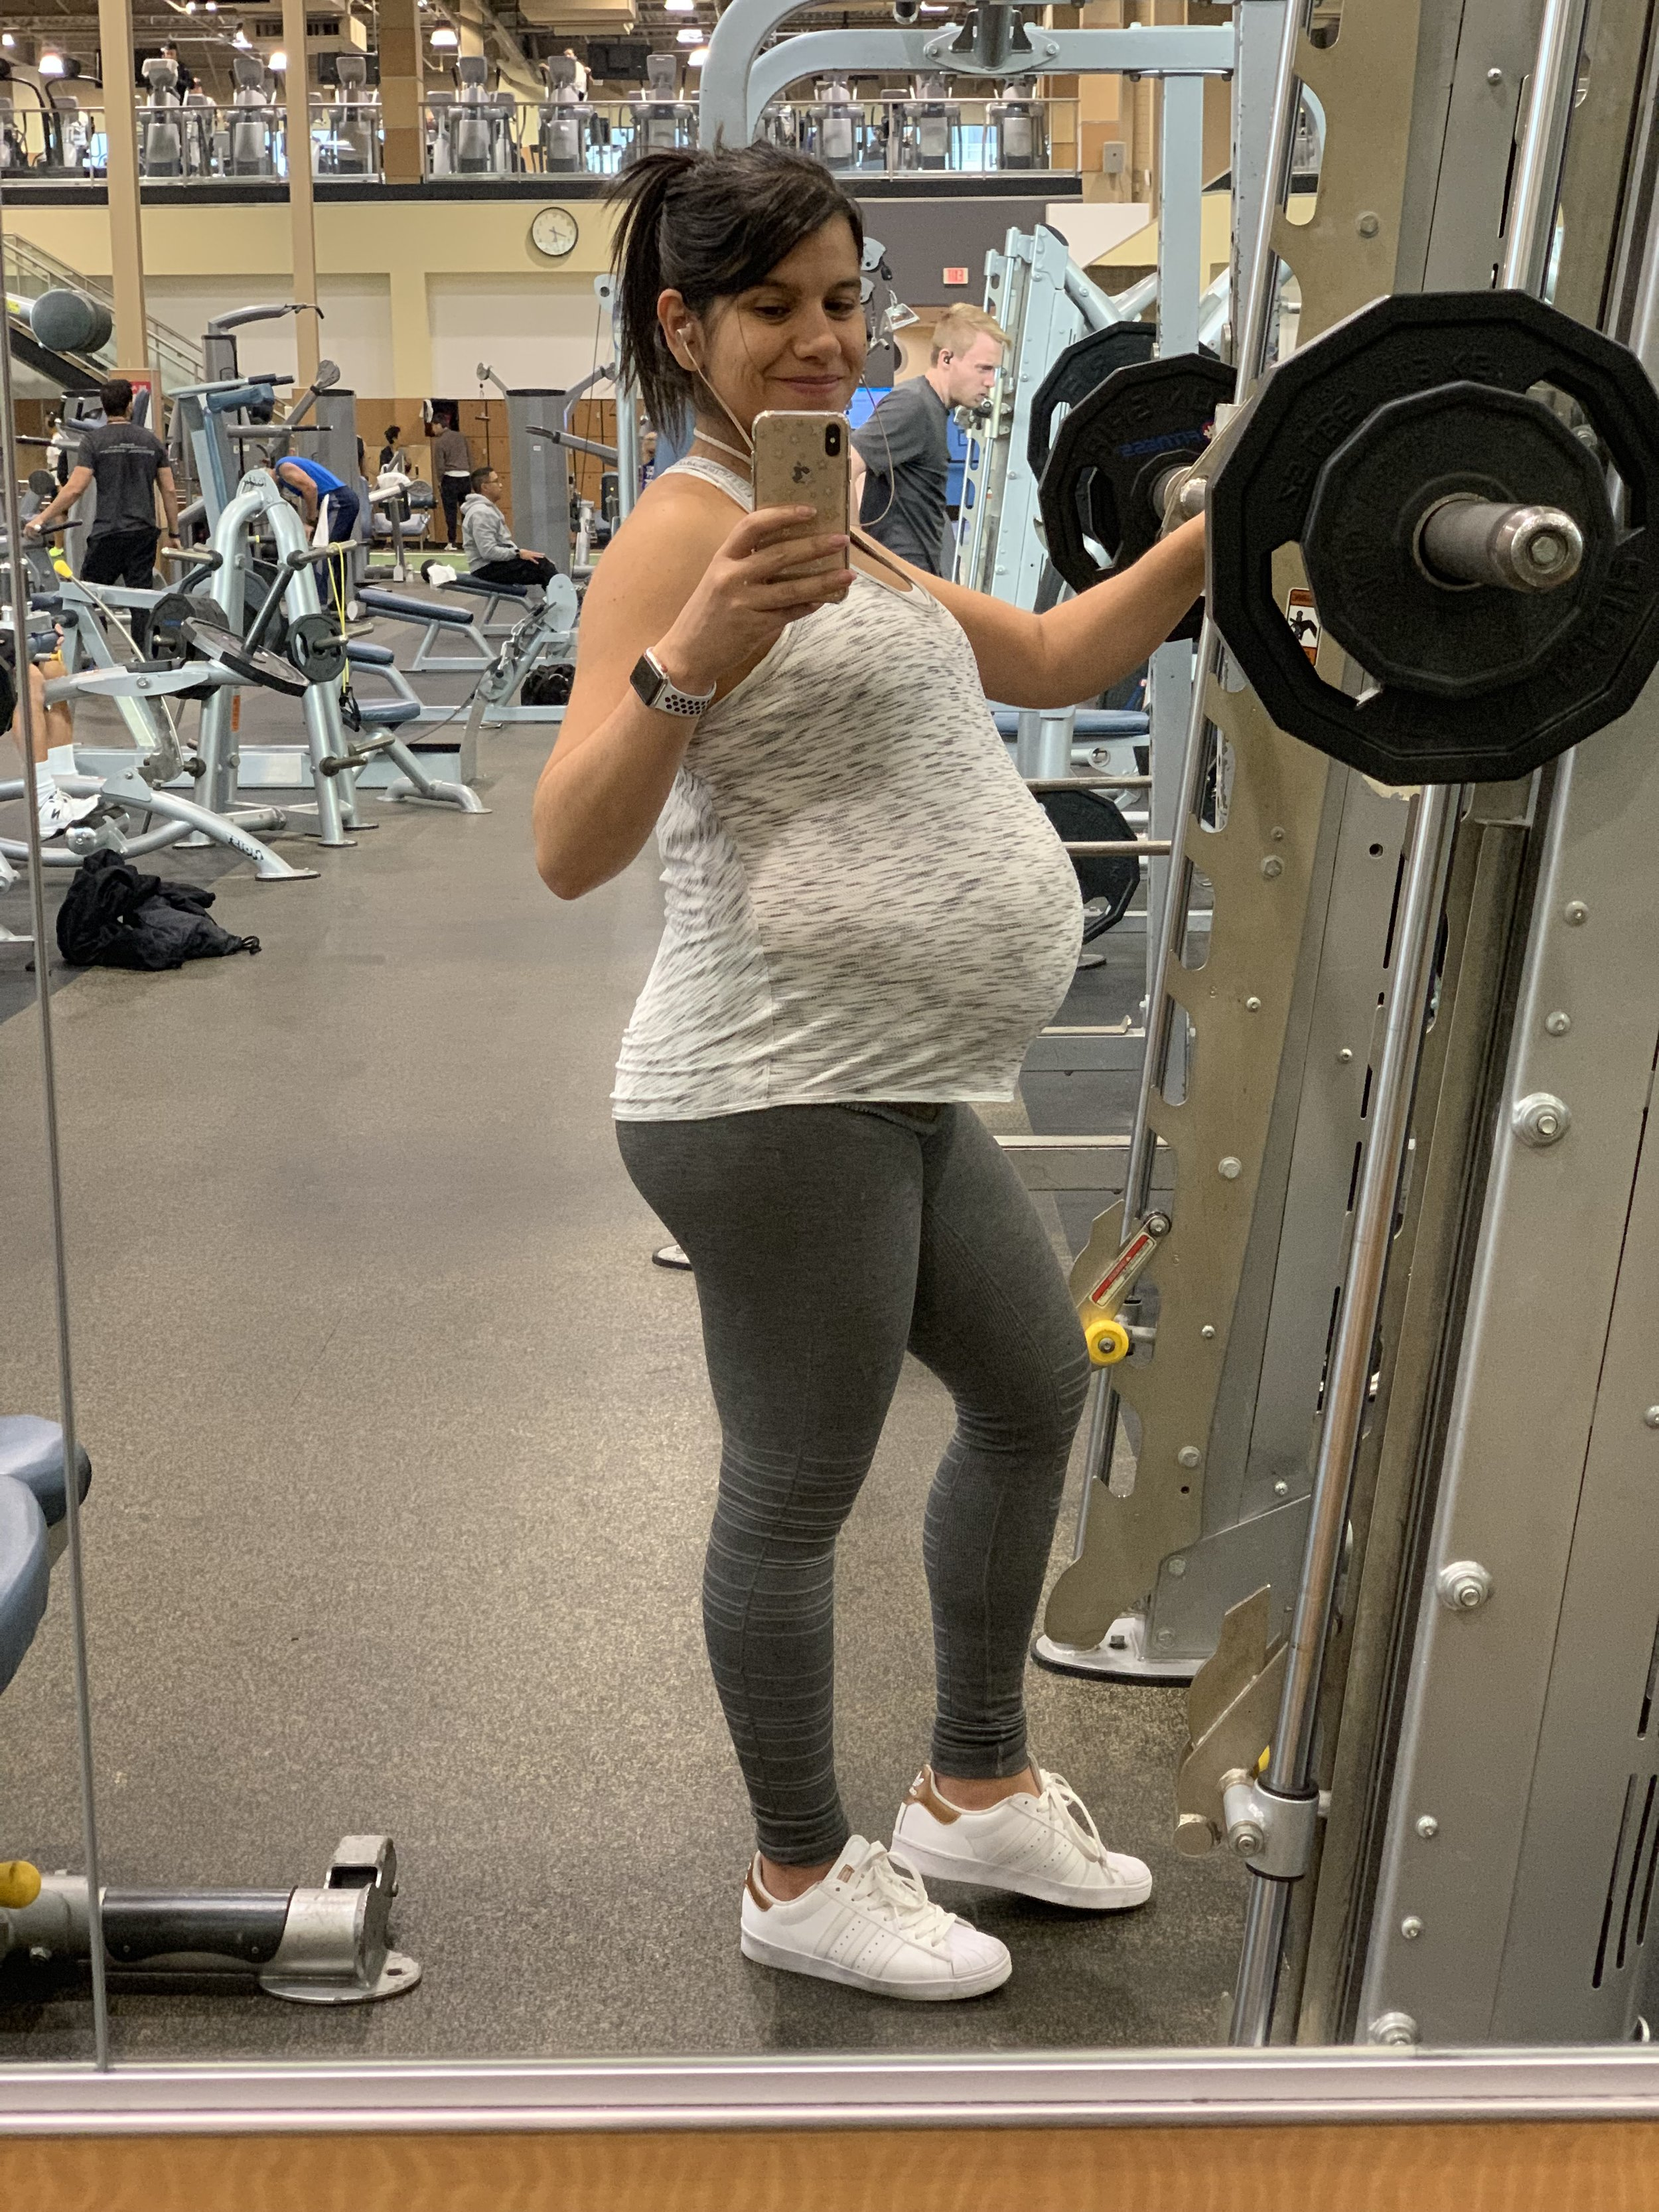 My last workout before labor, week 39 day 4.